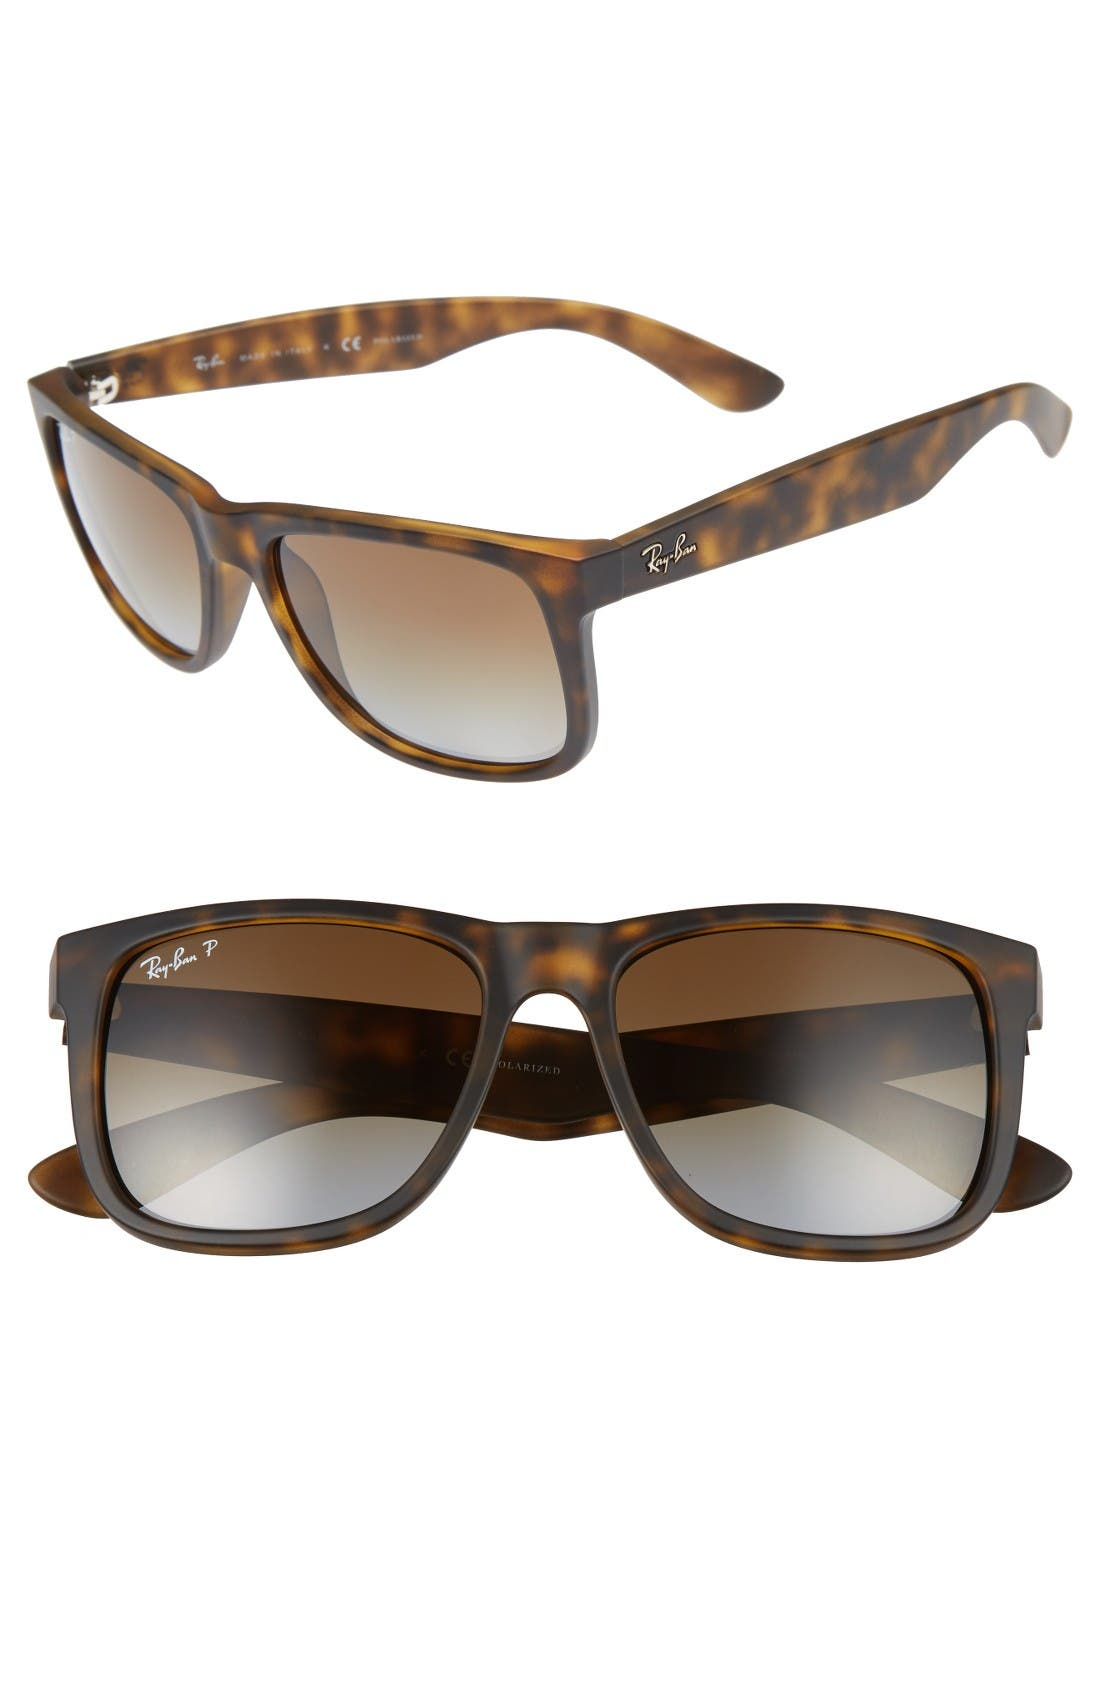 Main Image - Ray-Ban Justin 54mm Polarized Sunglasses